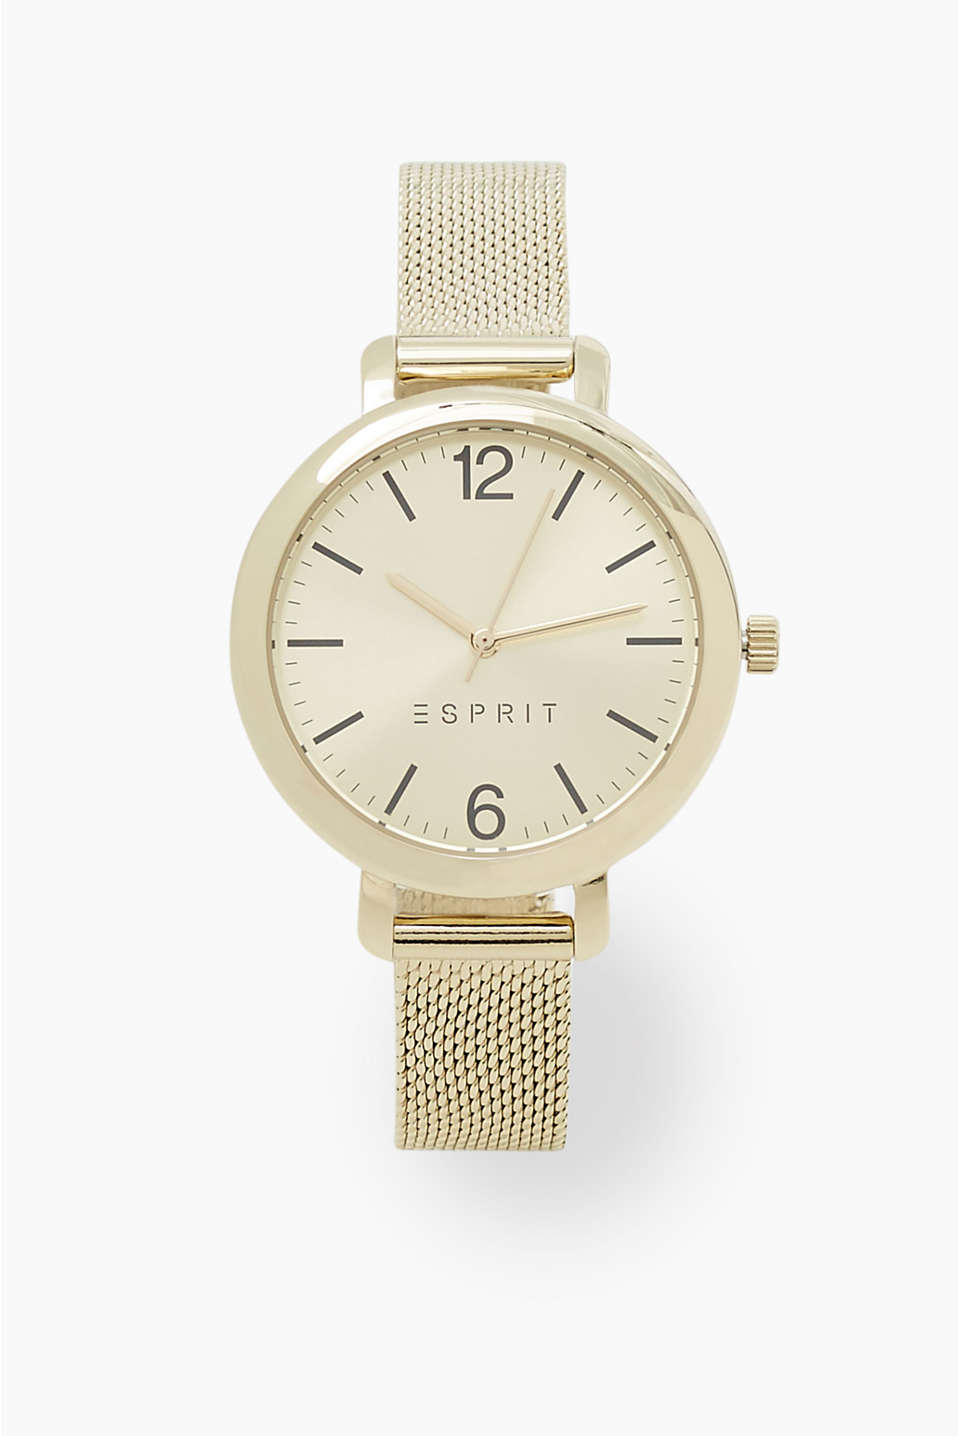 Watch in an elegant gold tone and a timeless minimalist design